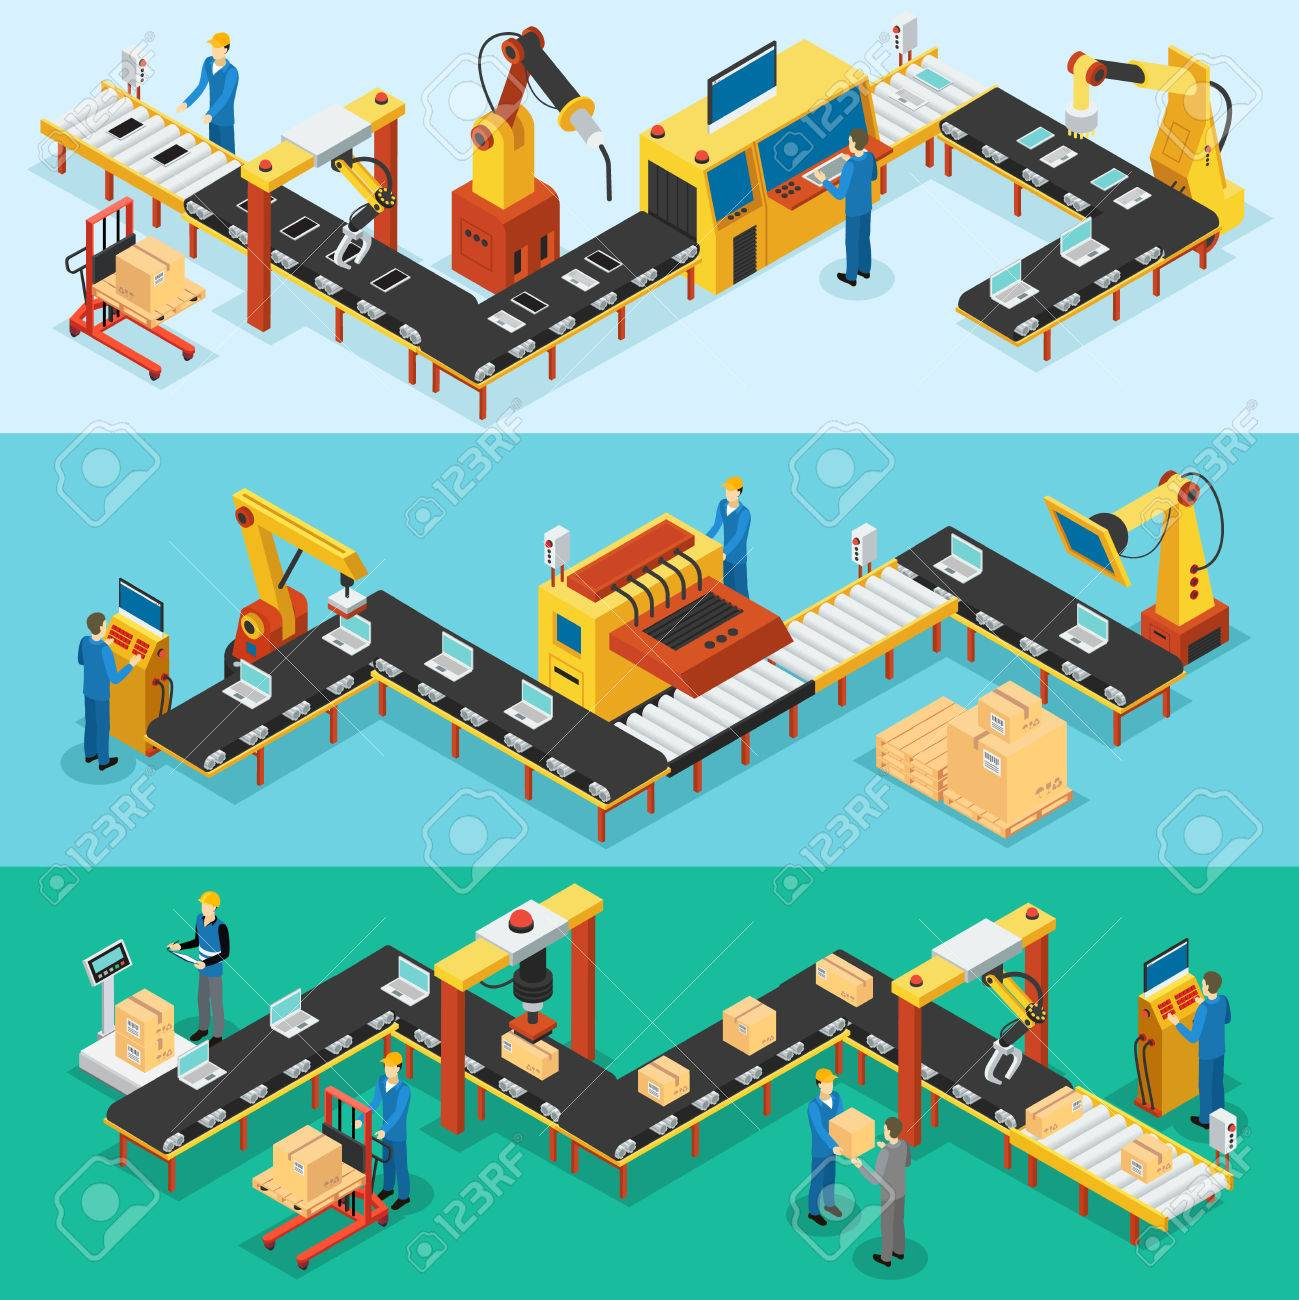 Isometric Industrial Factory Horizontal Banners - 72713744